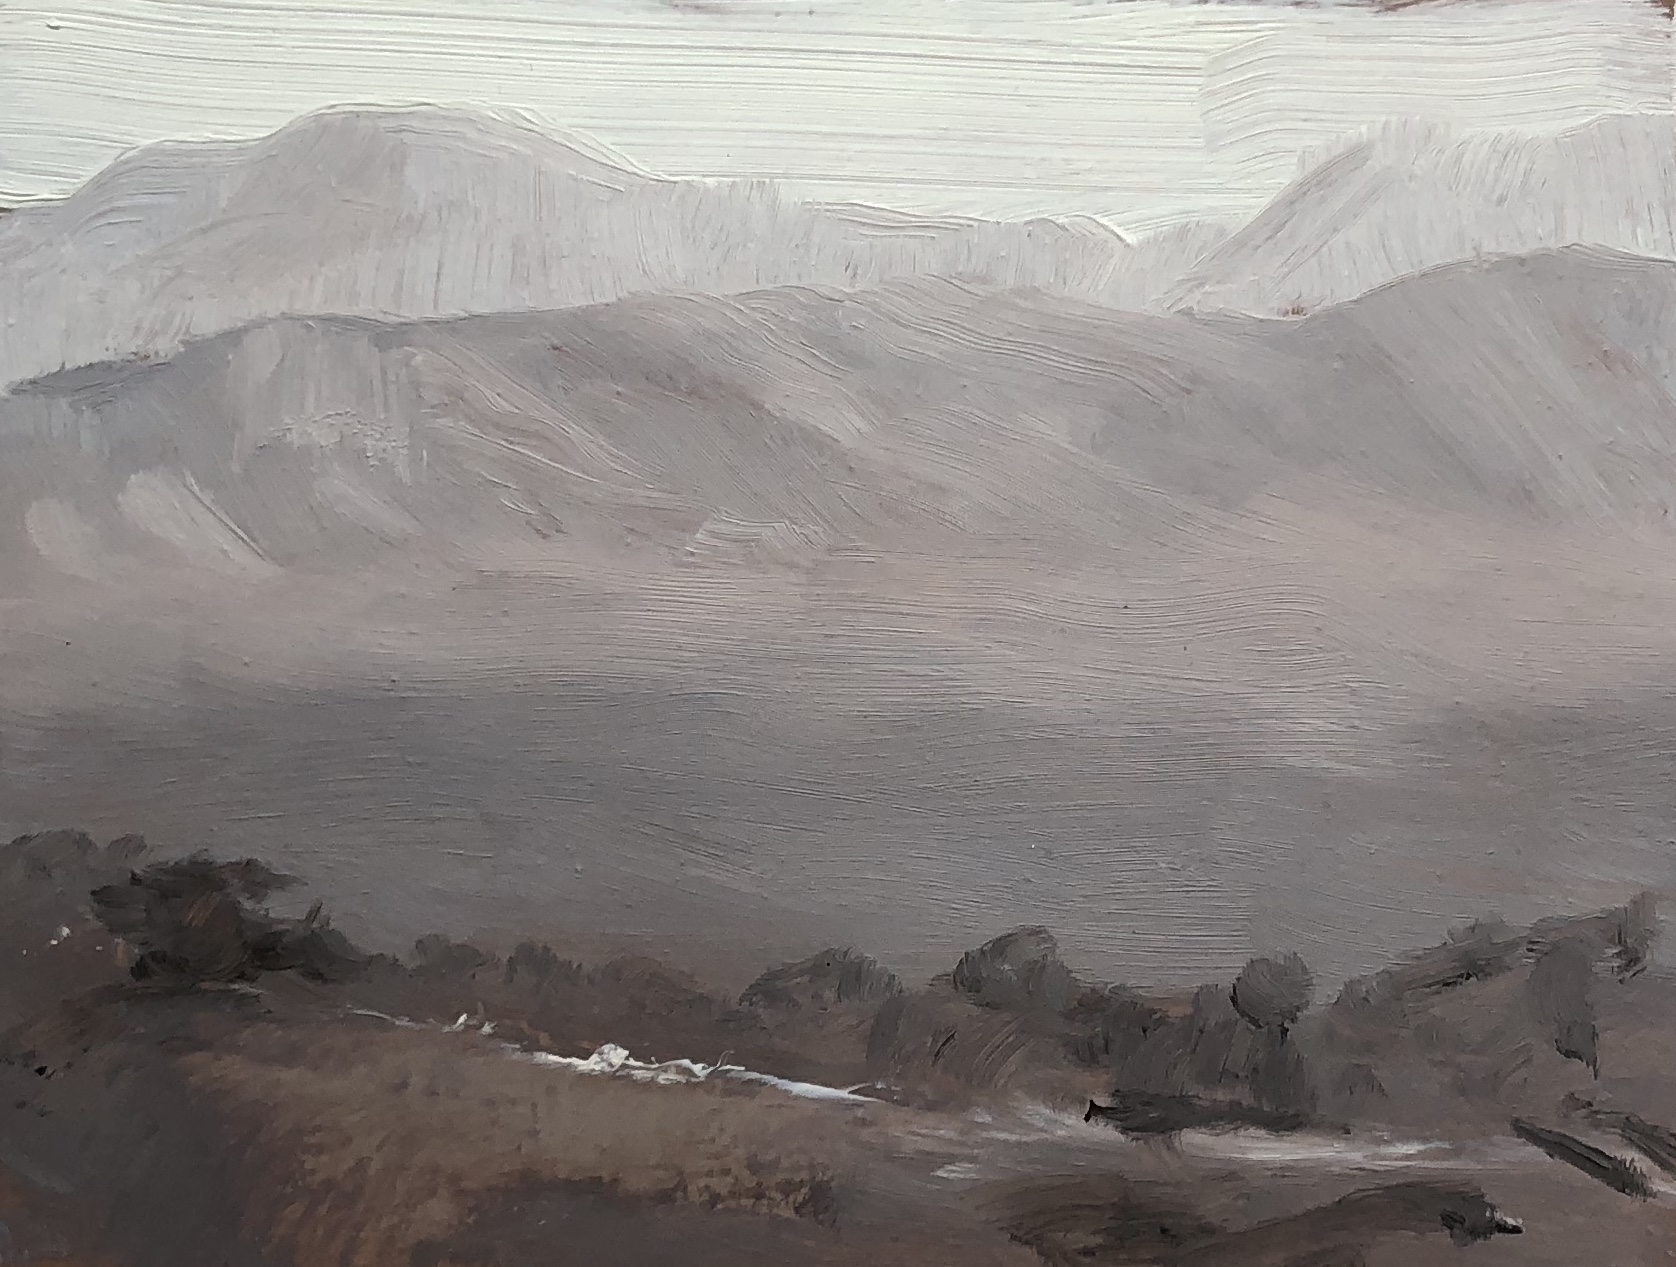 Burbank Value Study Oil on paper 3 by 5 inches 2016